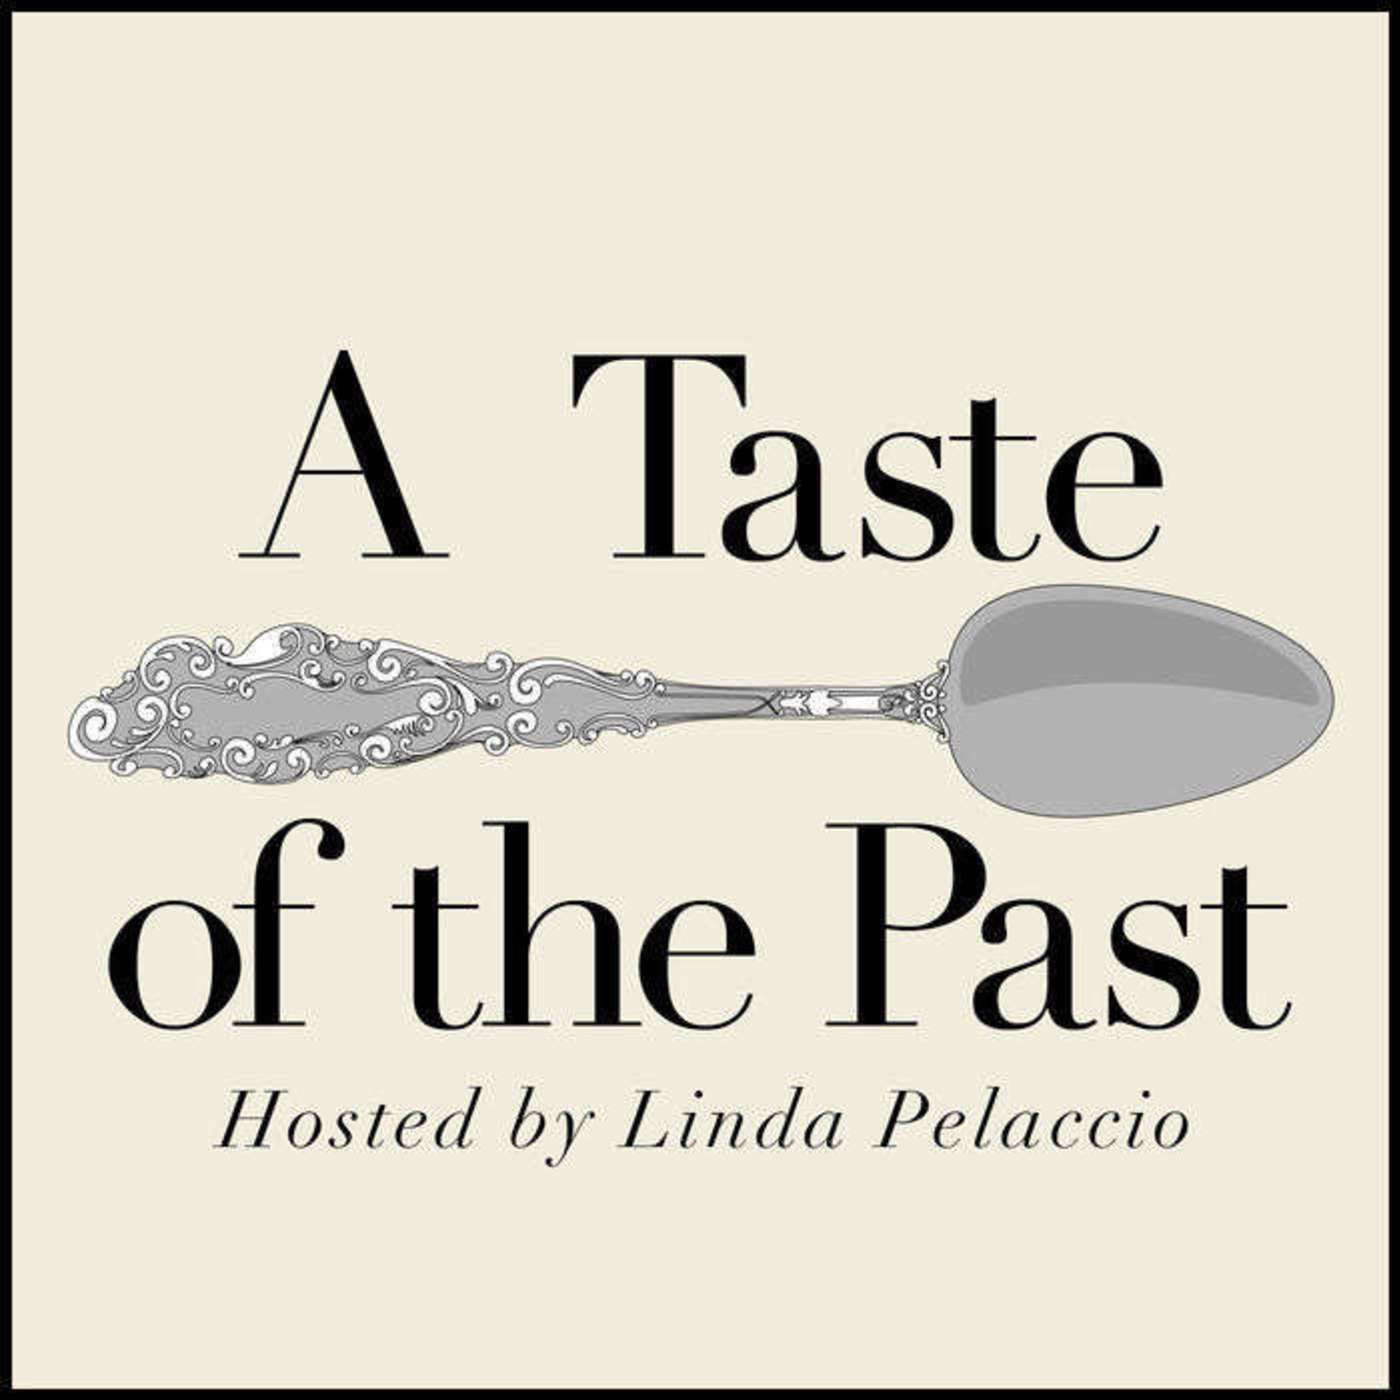 Episode 128: Southern Cooking with Nathalie Dupree and Cynthia Graubart